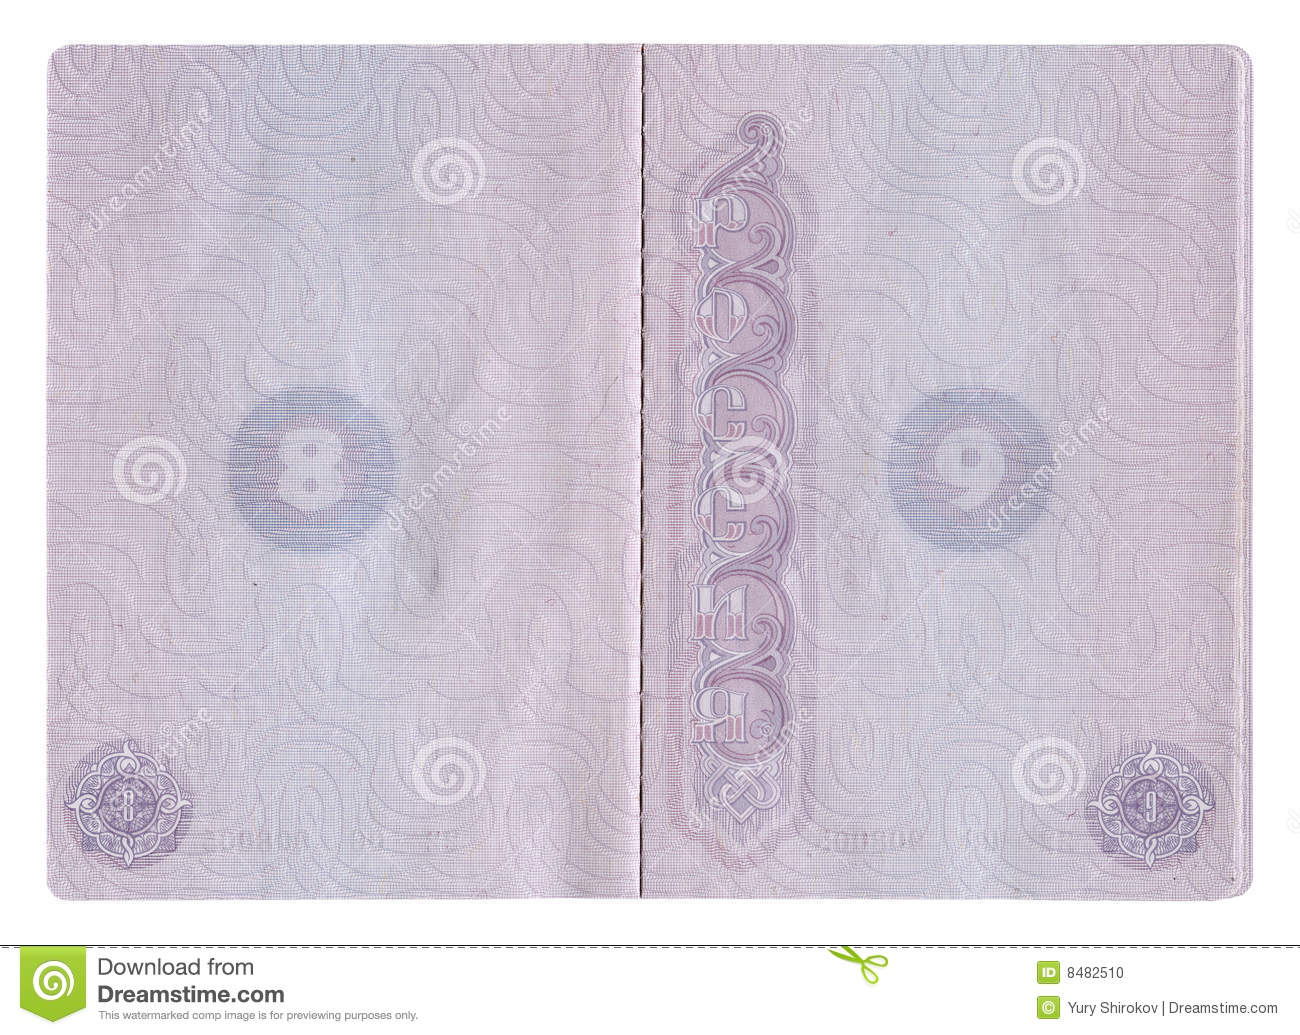 Blank Passport Pages Pictures To Pin On Pinterest Pinsdaddy